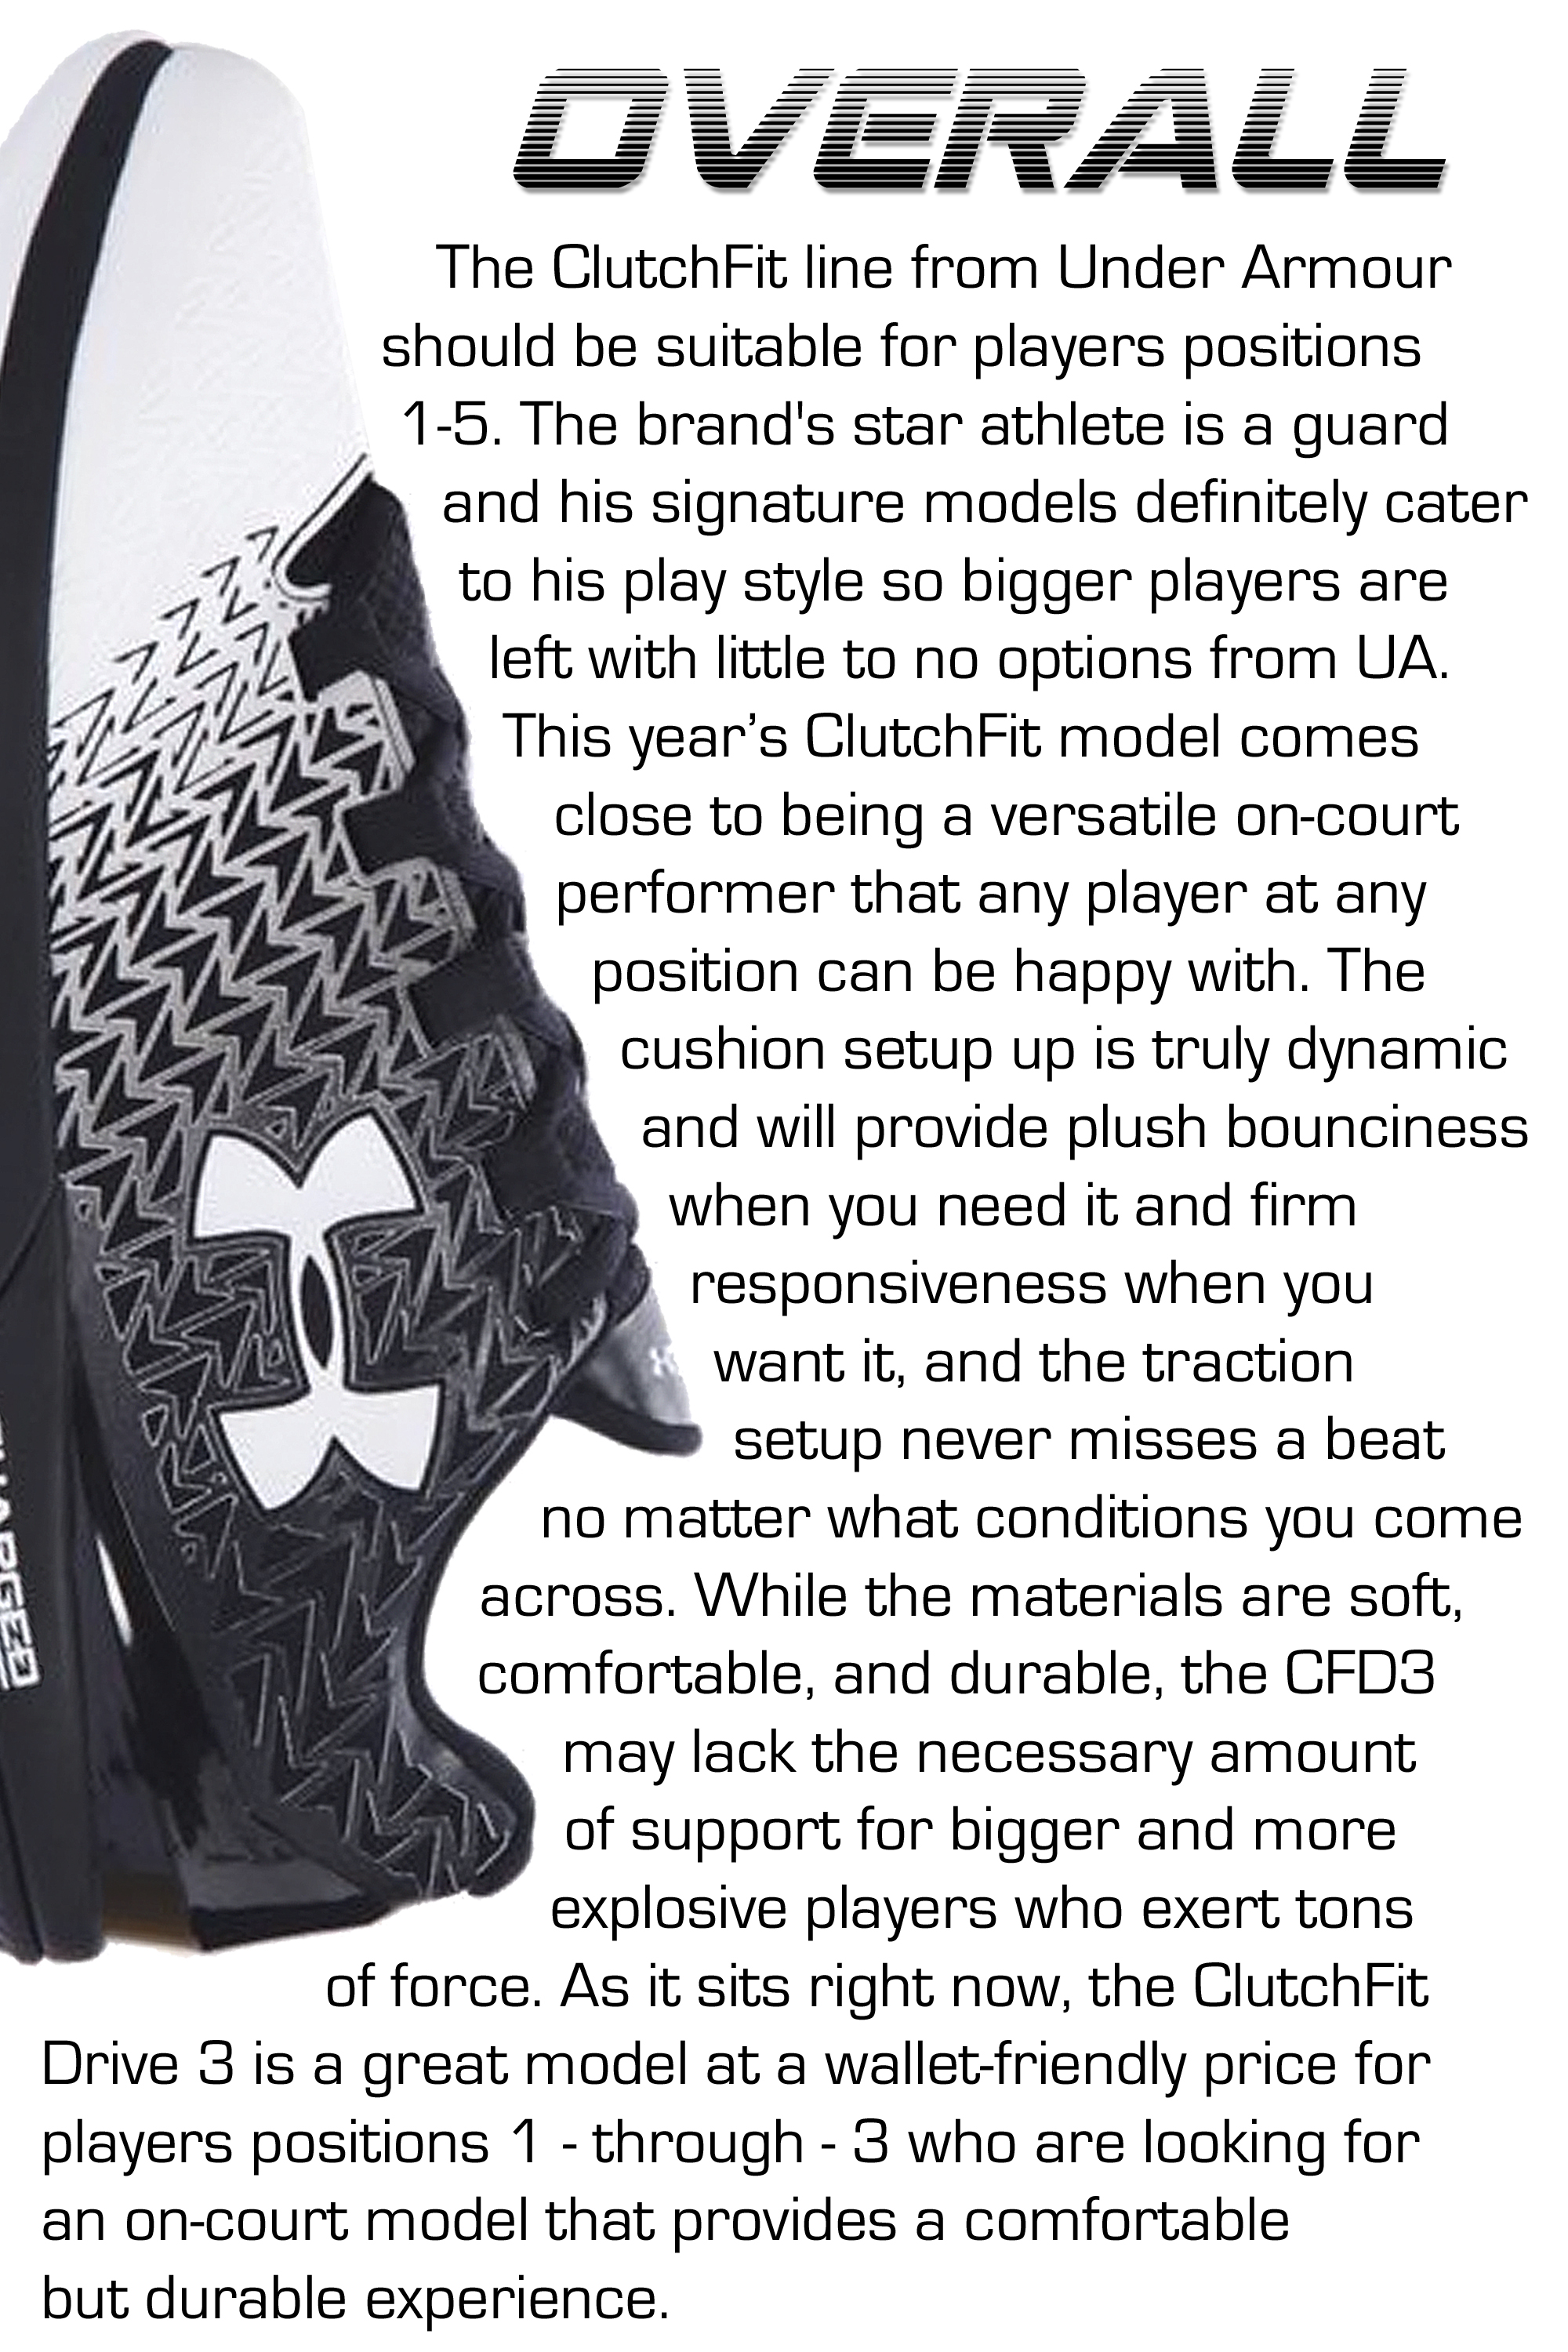 under armour clutchfit drive 3 performance review overall